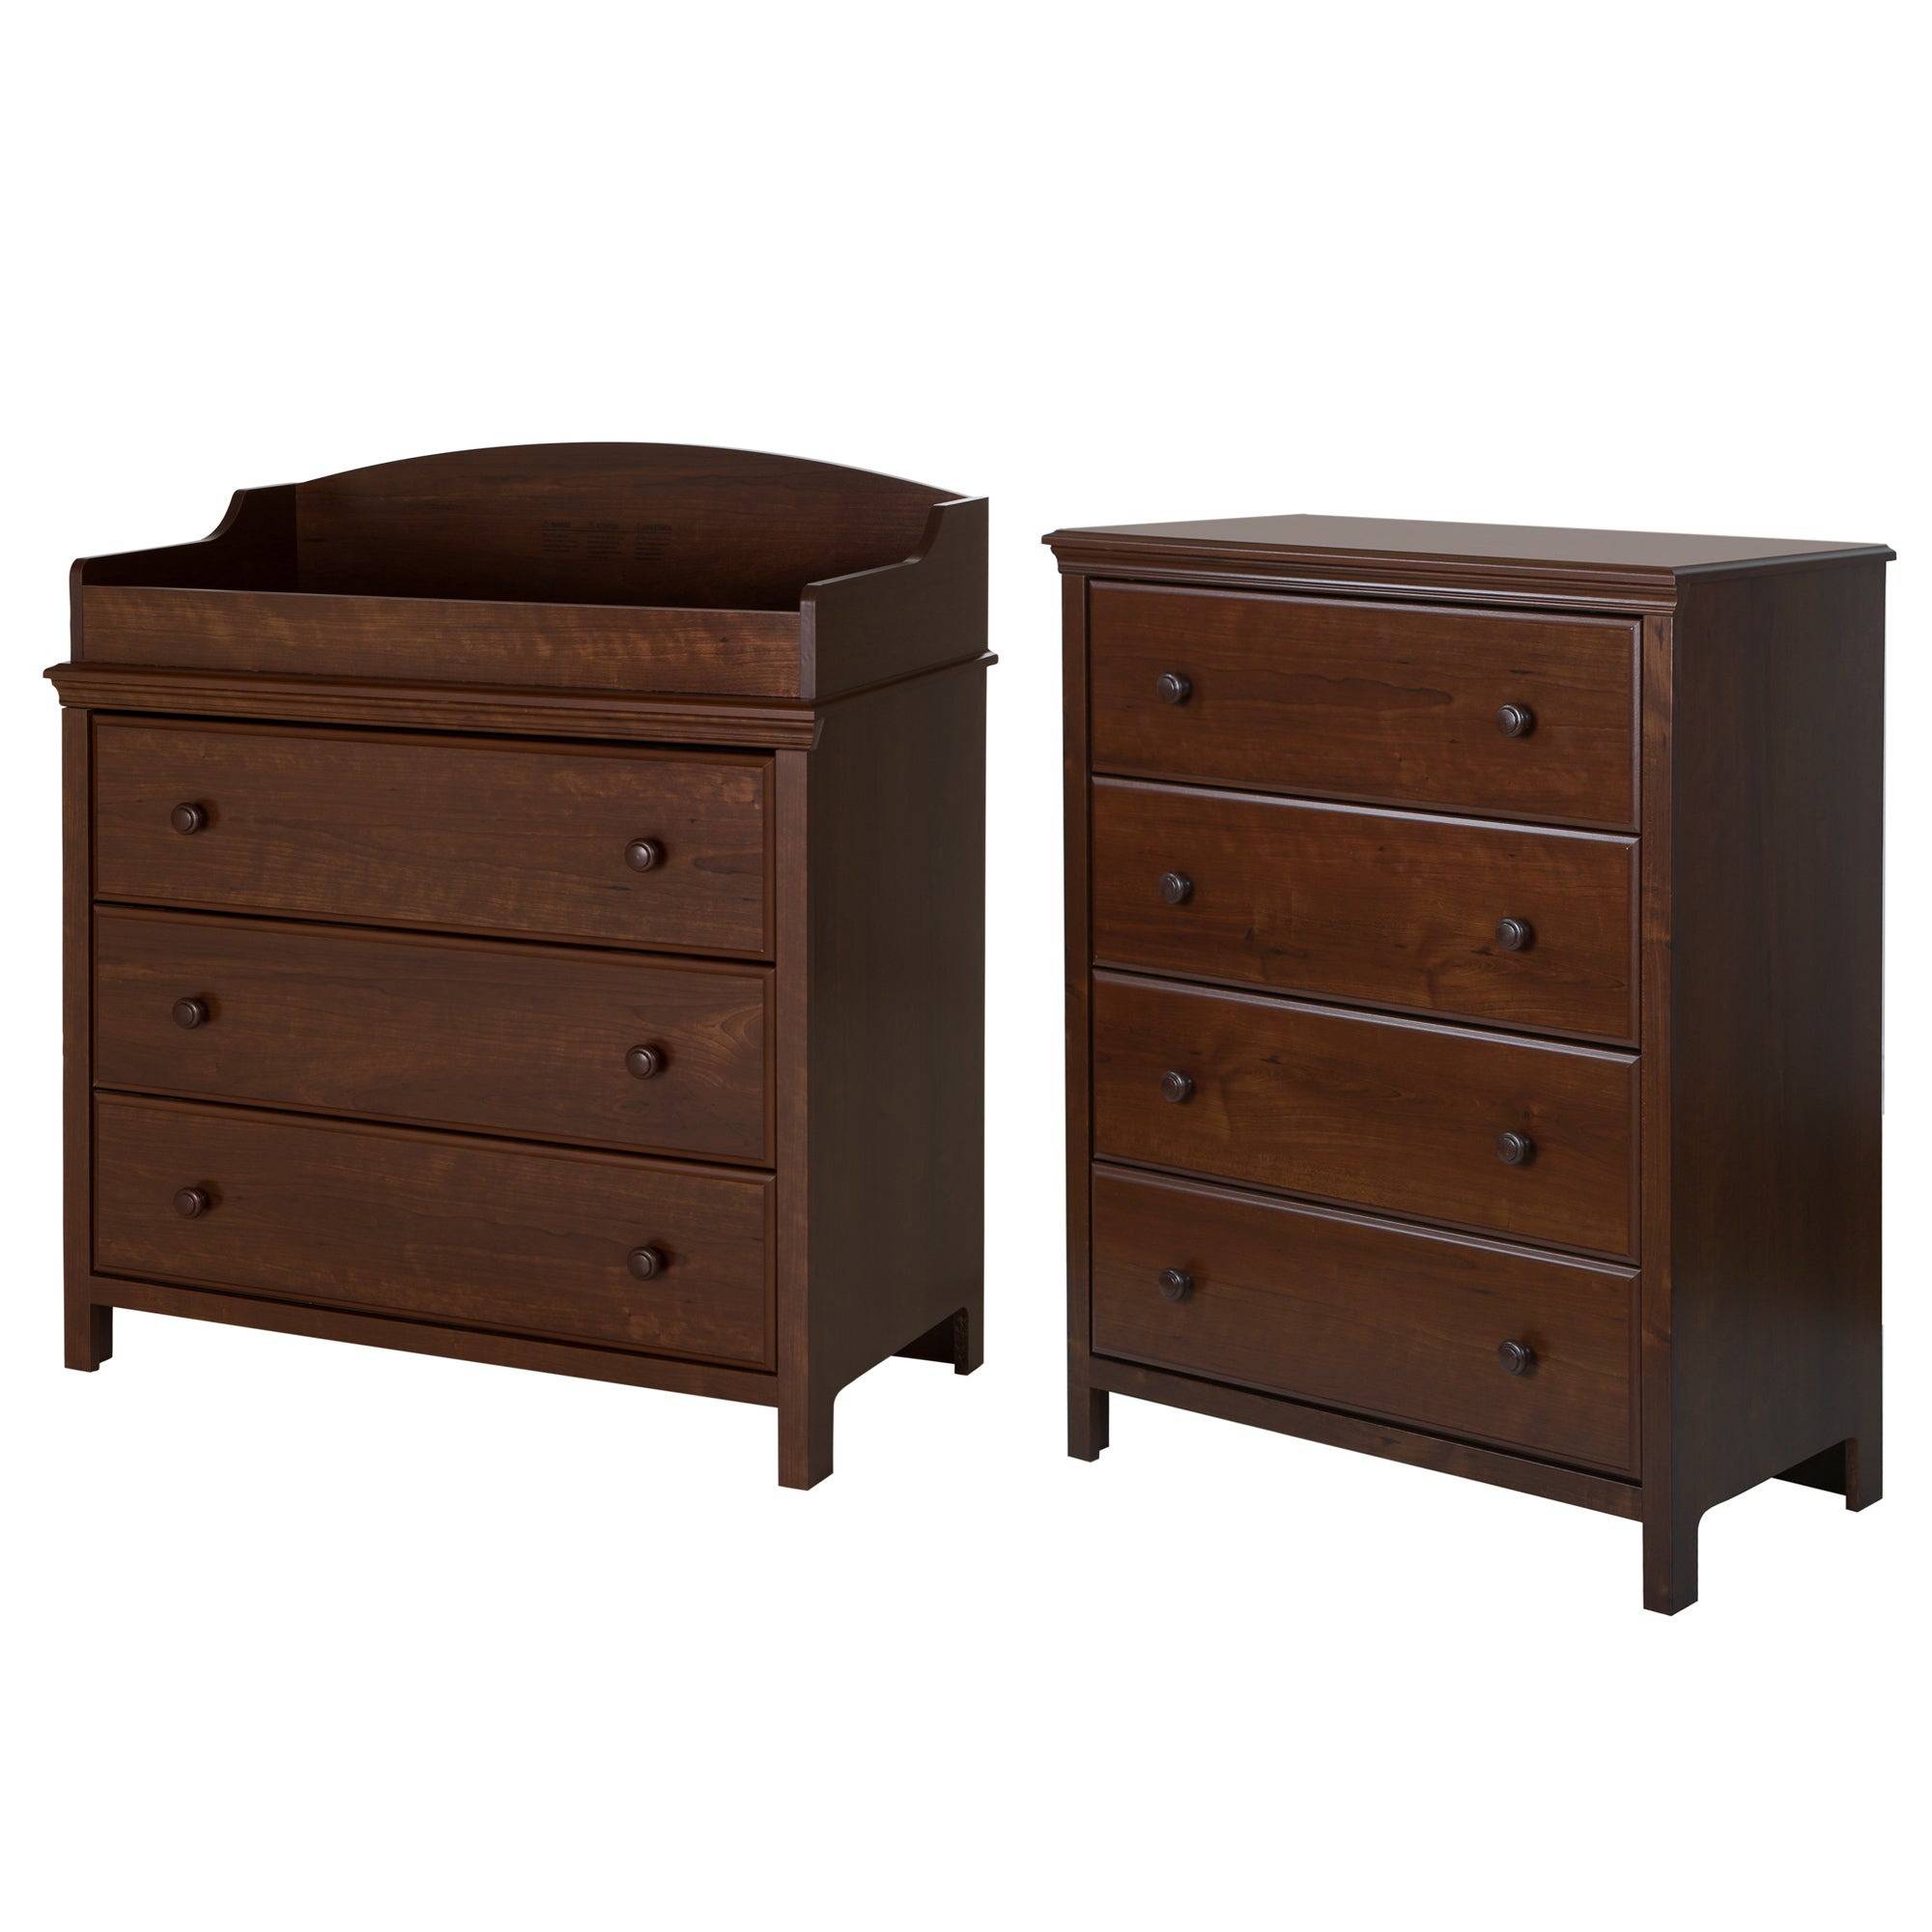 Shop South Shore Cotton Candy Changing Table With 4 Drawer Chest   Free  Shipping Today   Overstock.com   10897473